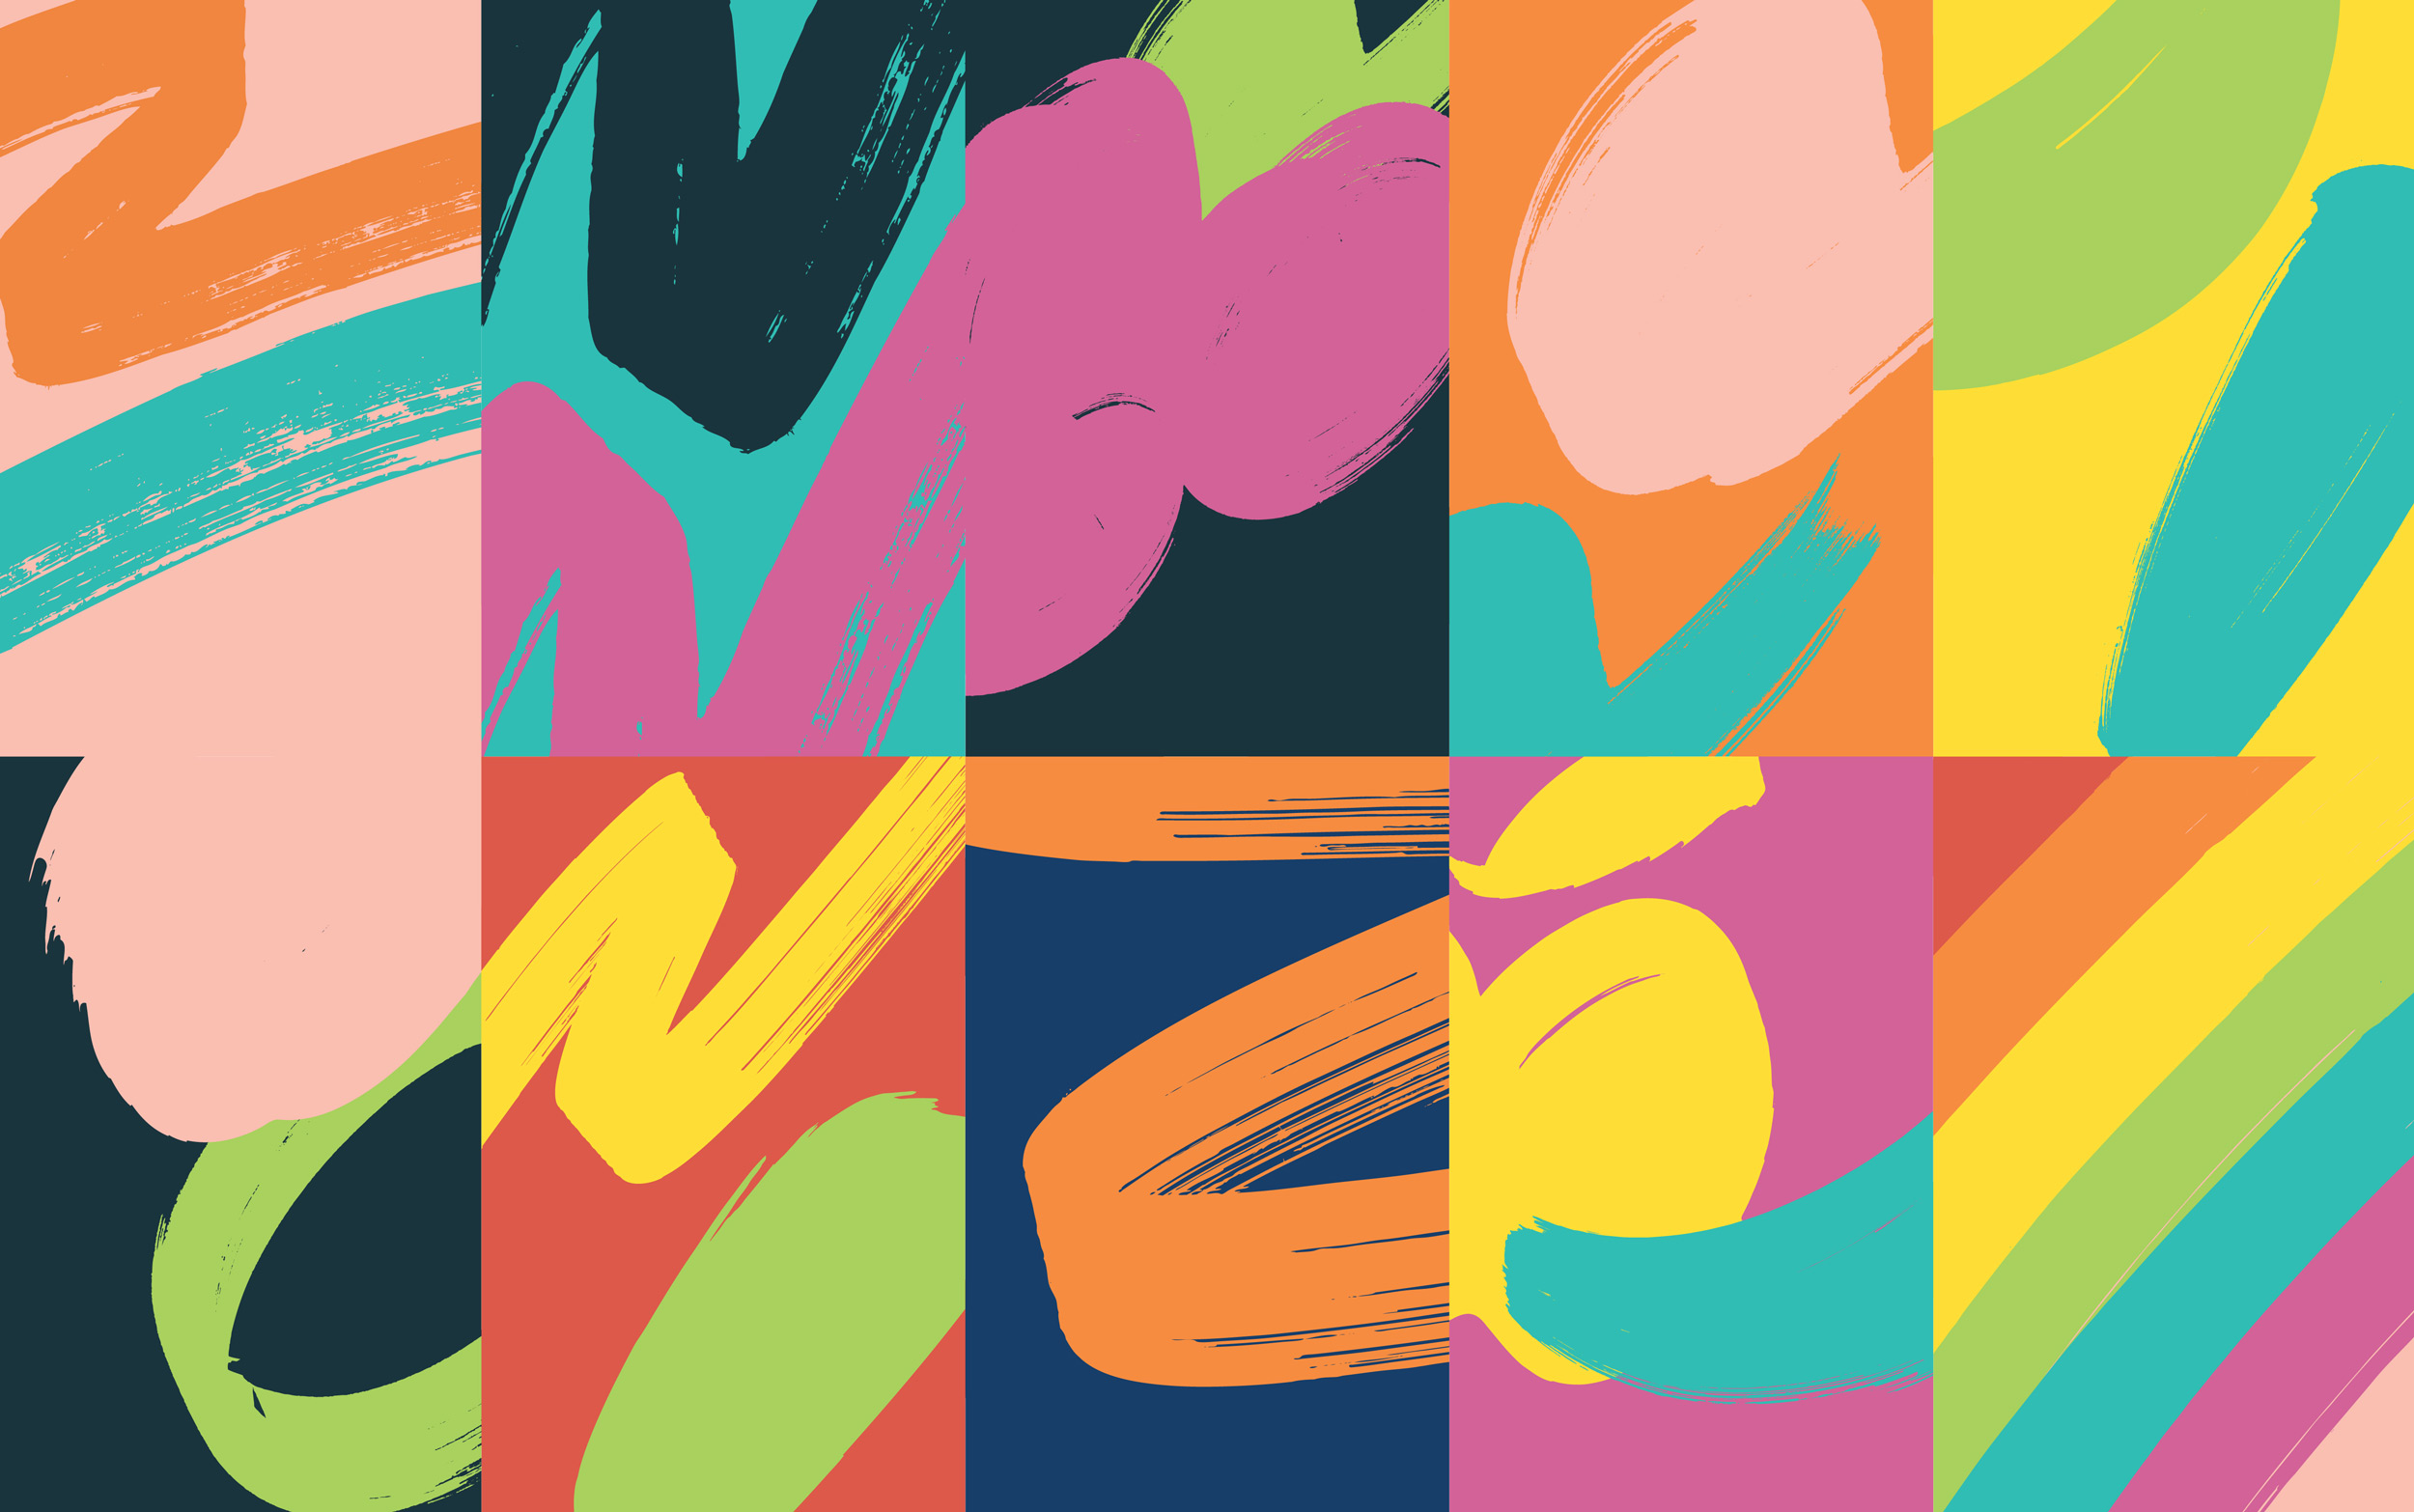 Backgrounds combining strokes and stains, with different color schemes.